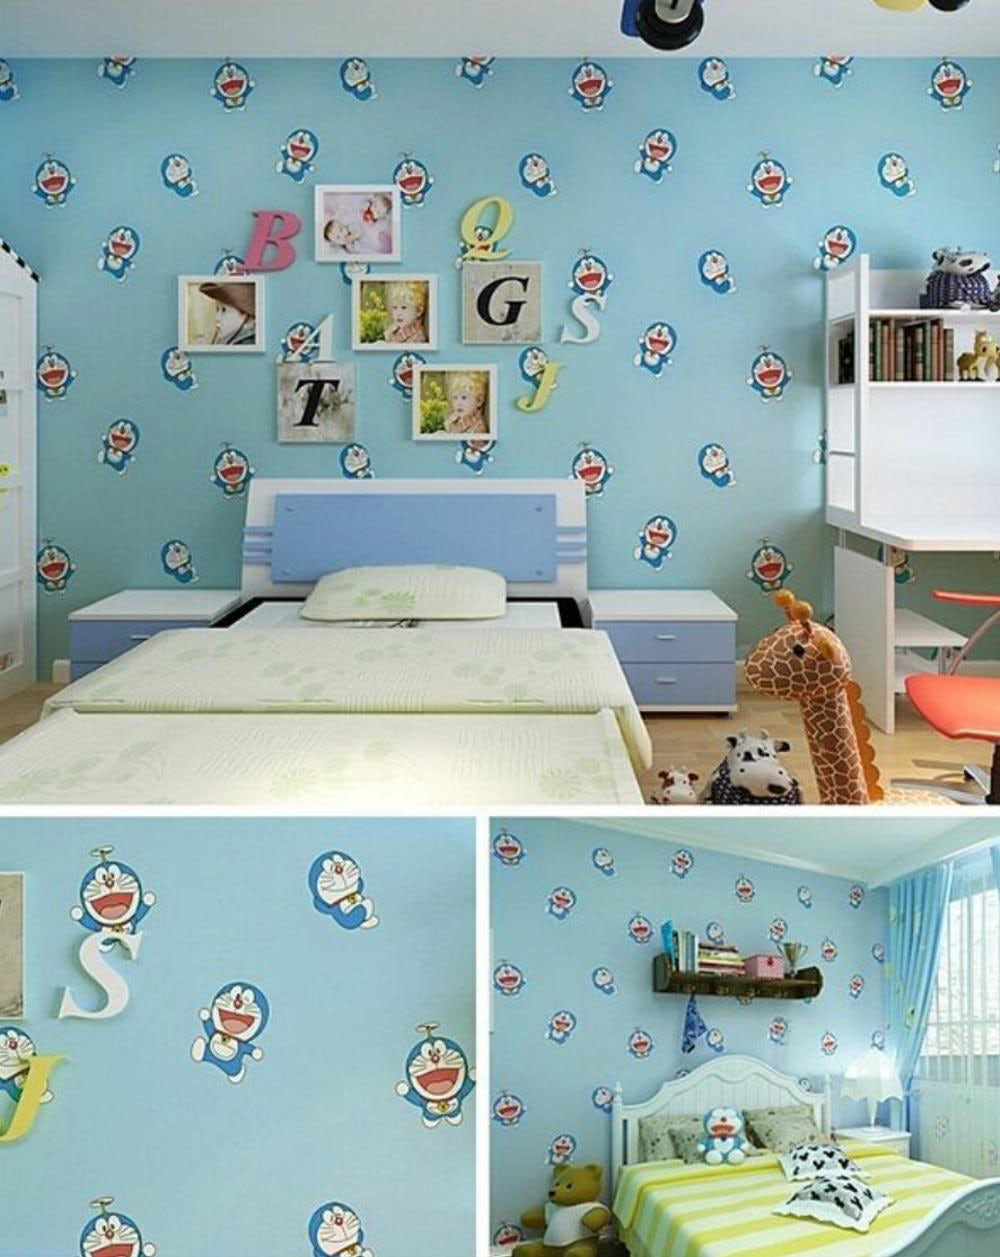 Jual Luxurious Wallpaper Dinding Lux 10 88 Prb 5 22 Sticker